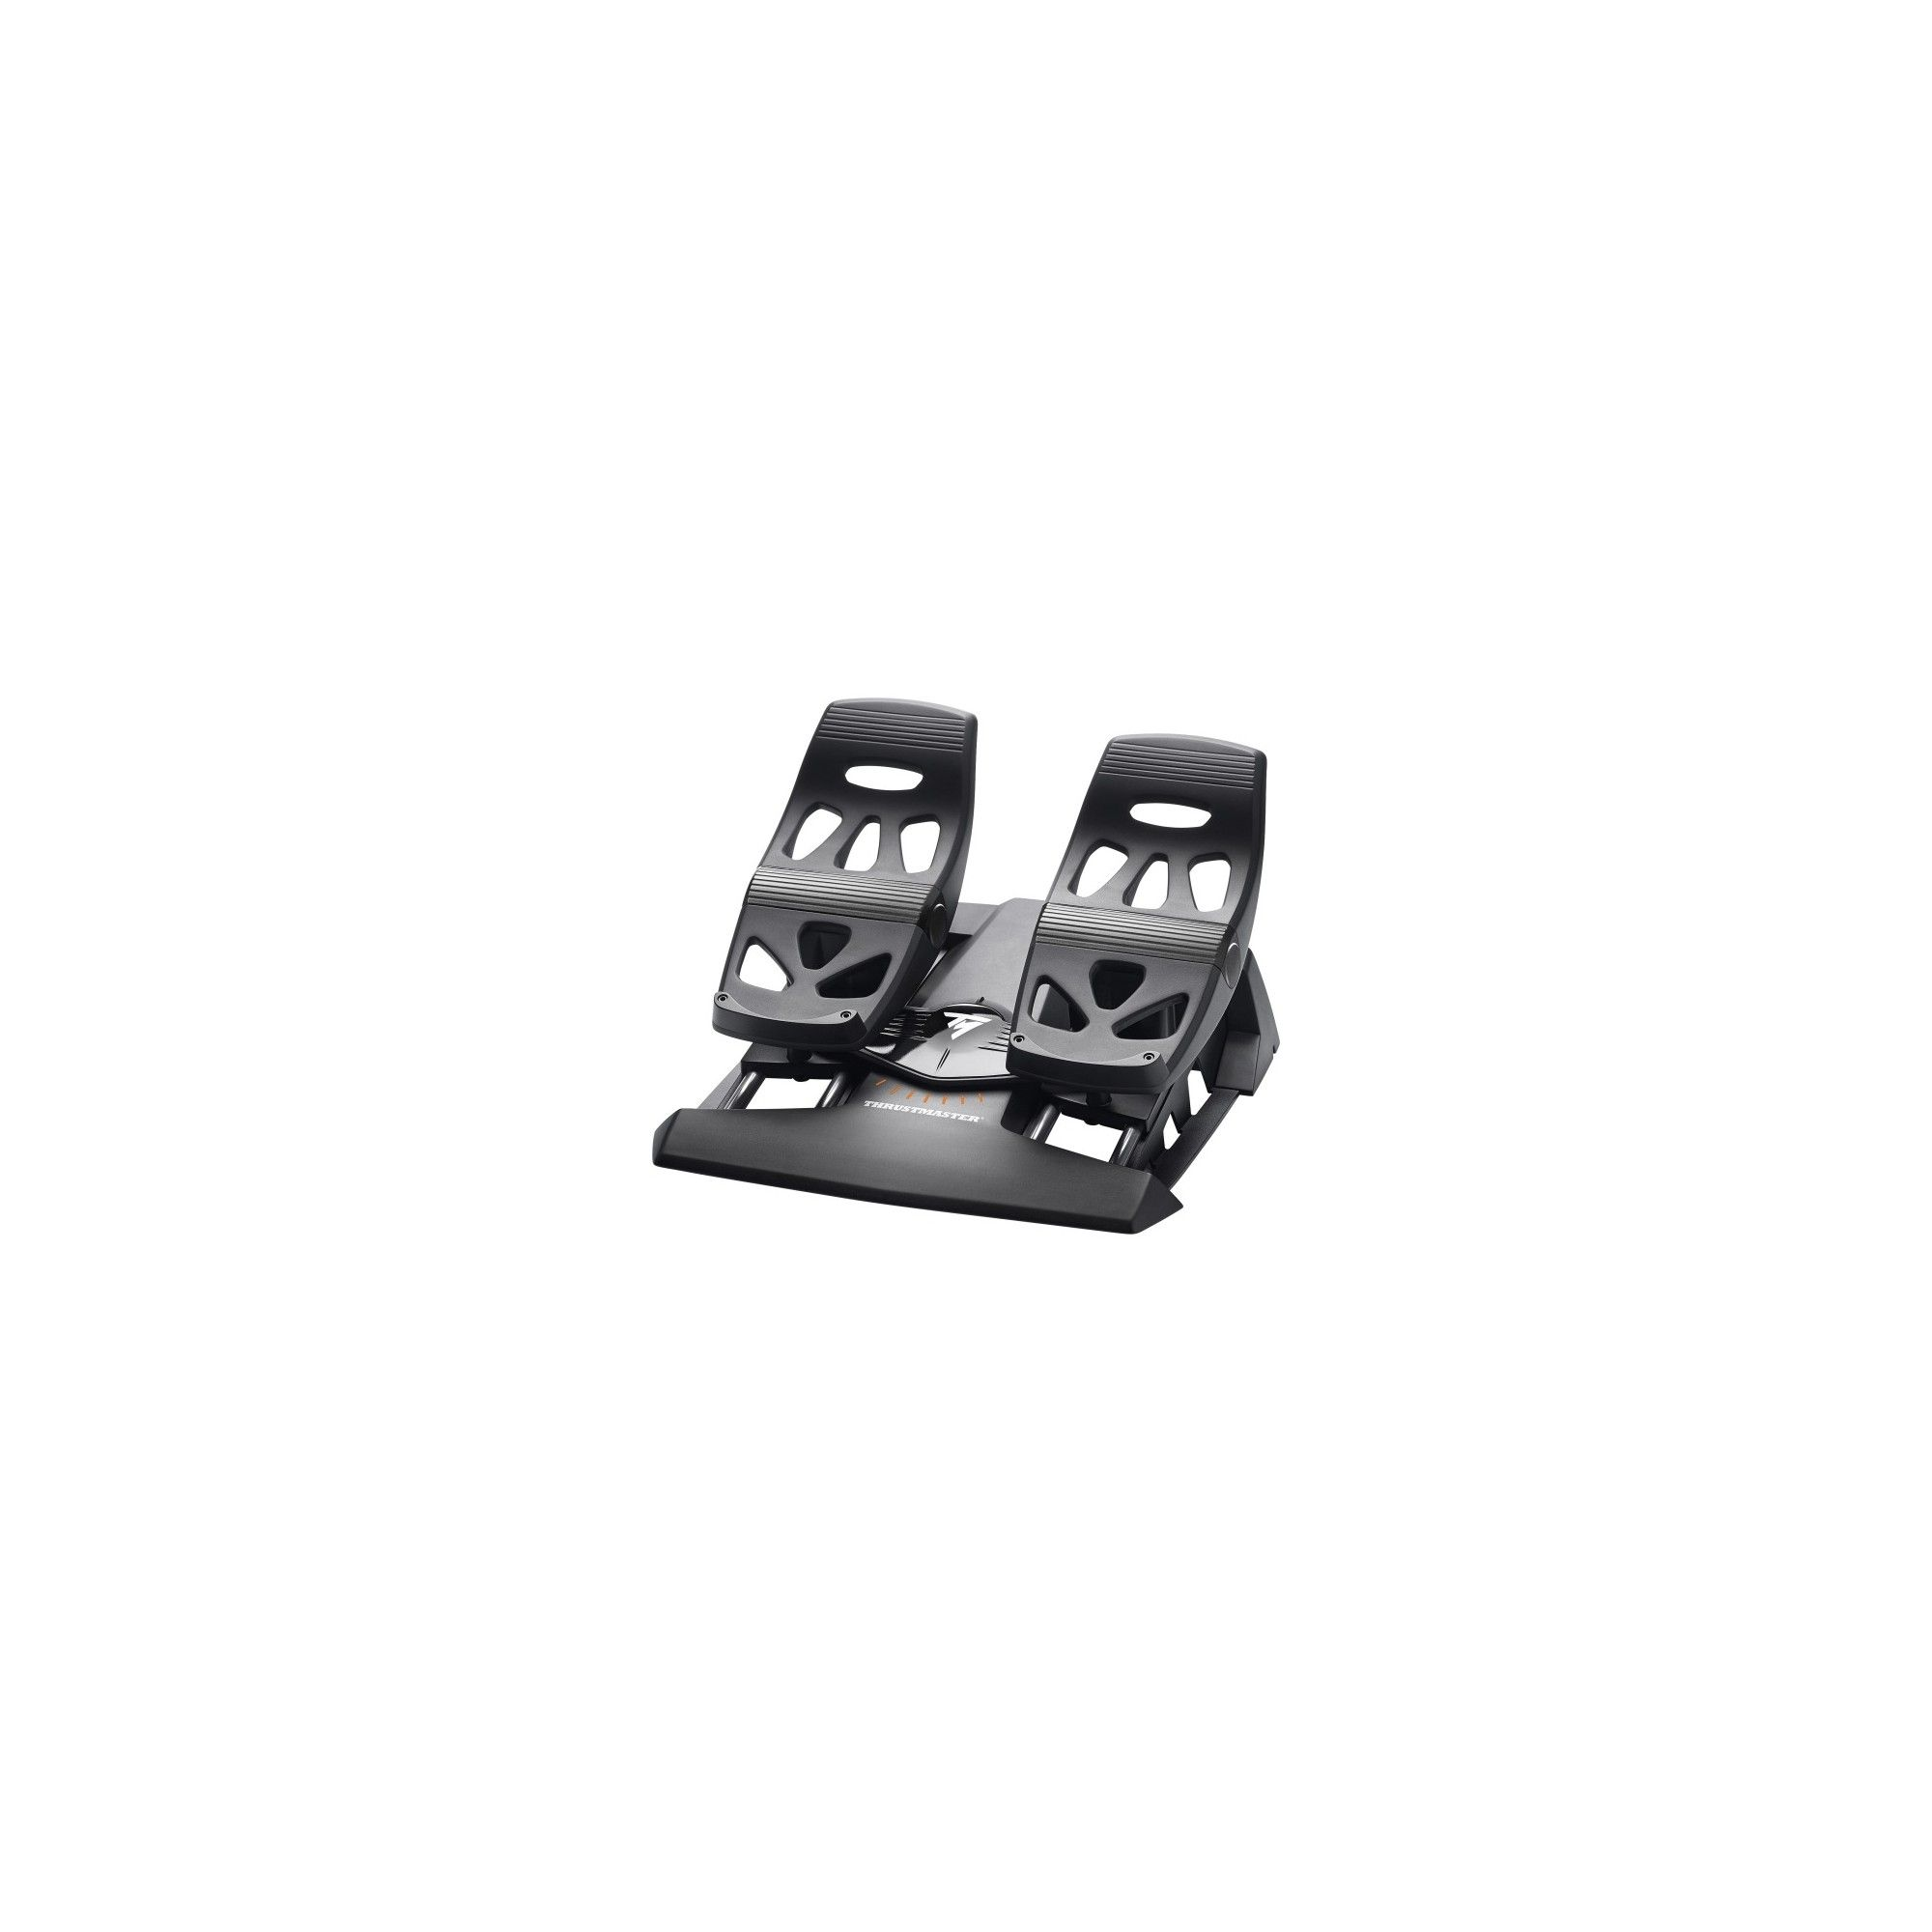 Thrustmaster T Flight Rudder Pedals - Cable - USB - PC, PlayStation